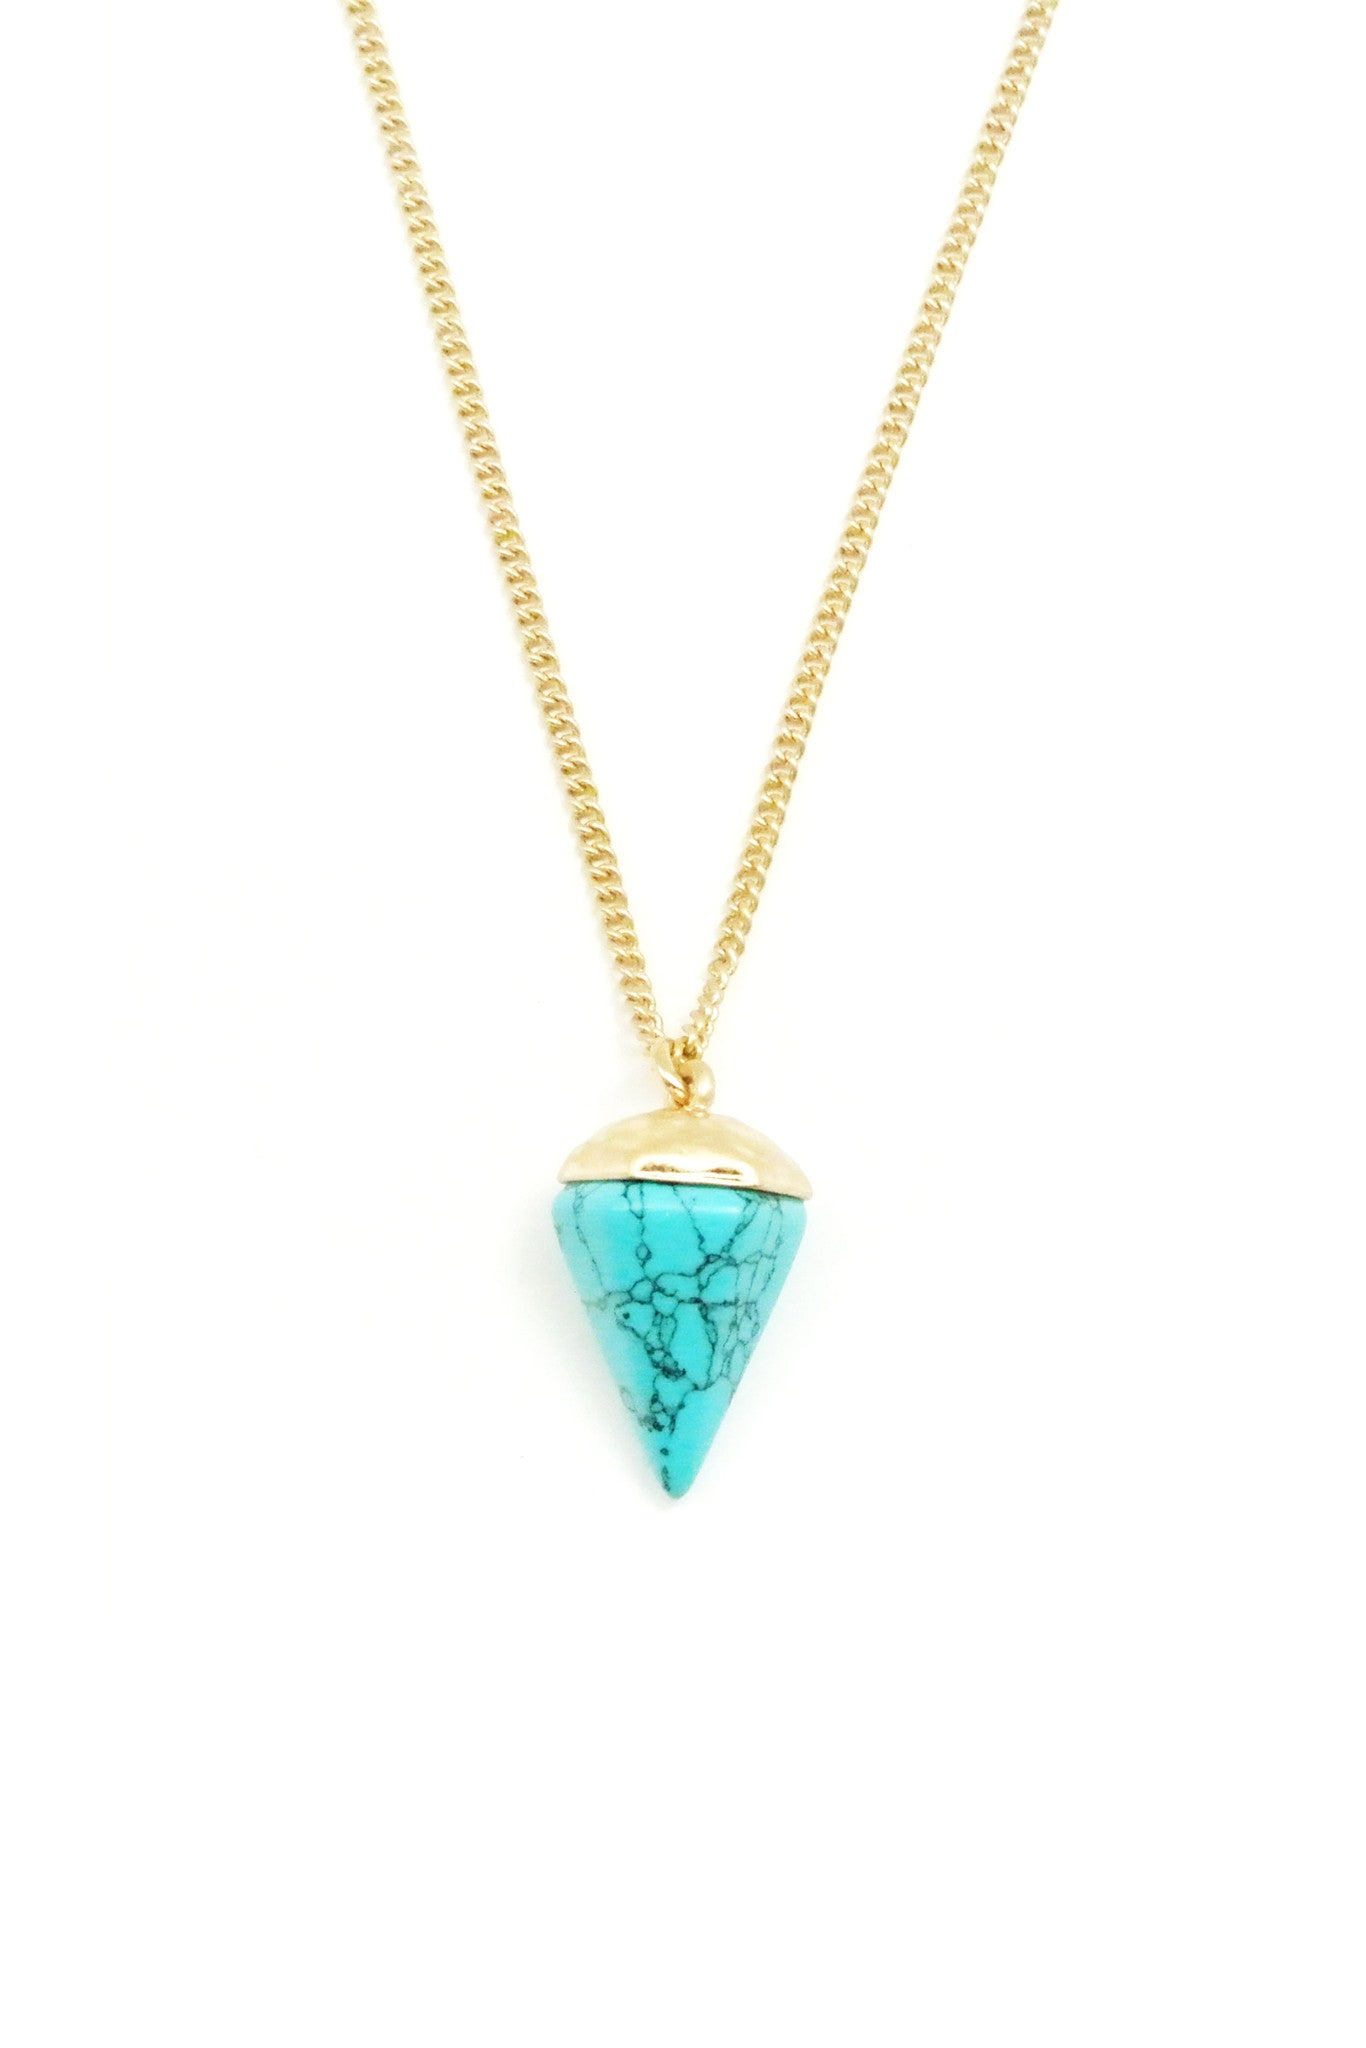 Truly Turquoise Necklace